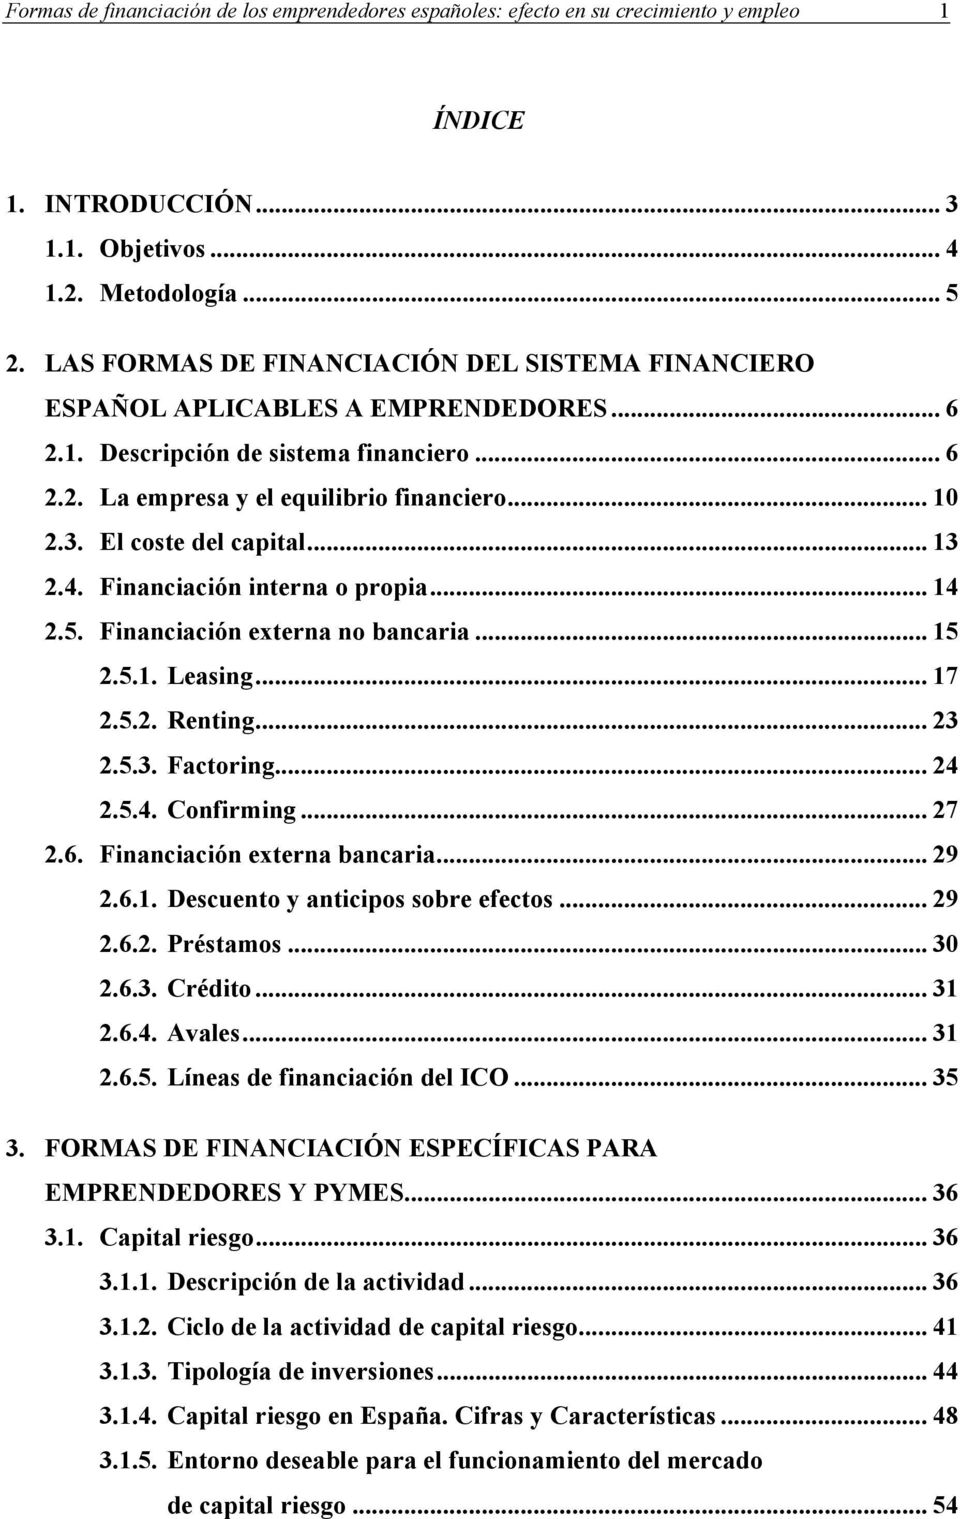 El coste del capital... 13 2.4. Financiación interna o propia... 14 2.5. Financiación externa no bancaria... 15 2.5.1. Leasing... 17 2.5.2. Renting... 23 2.5.3. Factoring... 24 2.5.4. Confirming.